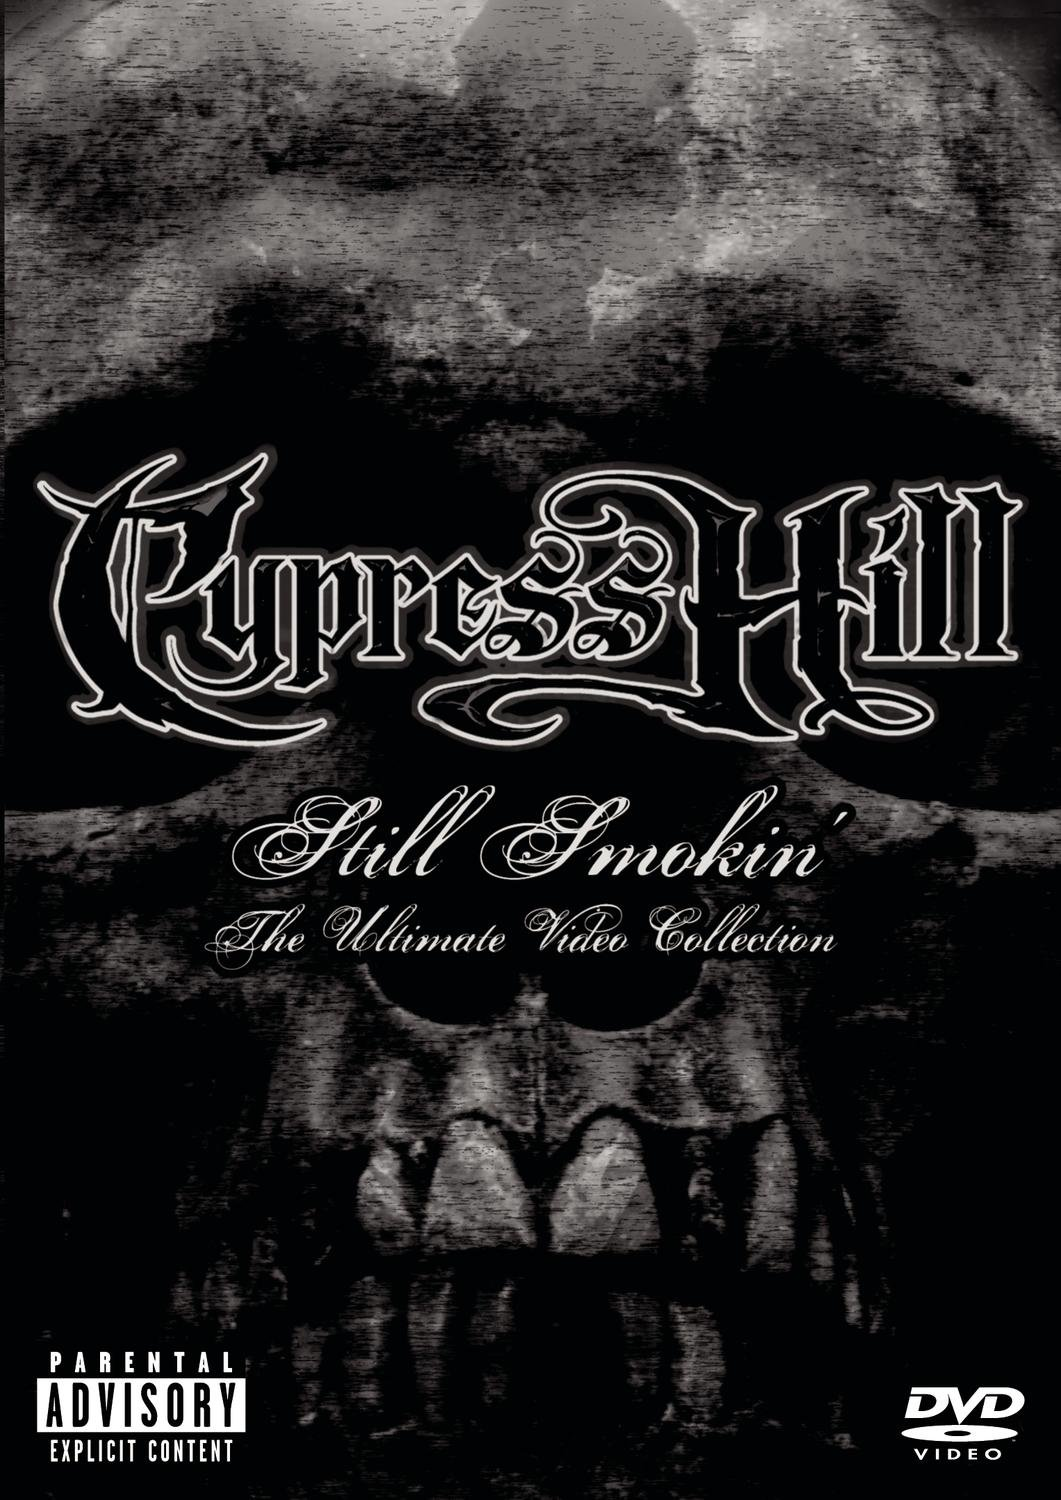 Cypress Hill - The Ultimate Video Collection by Sony Legacy